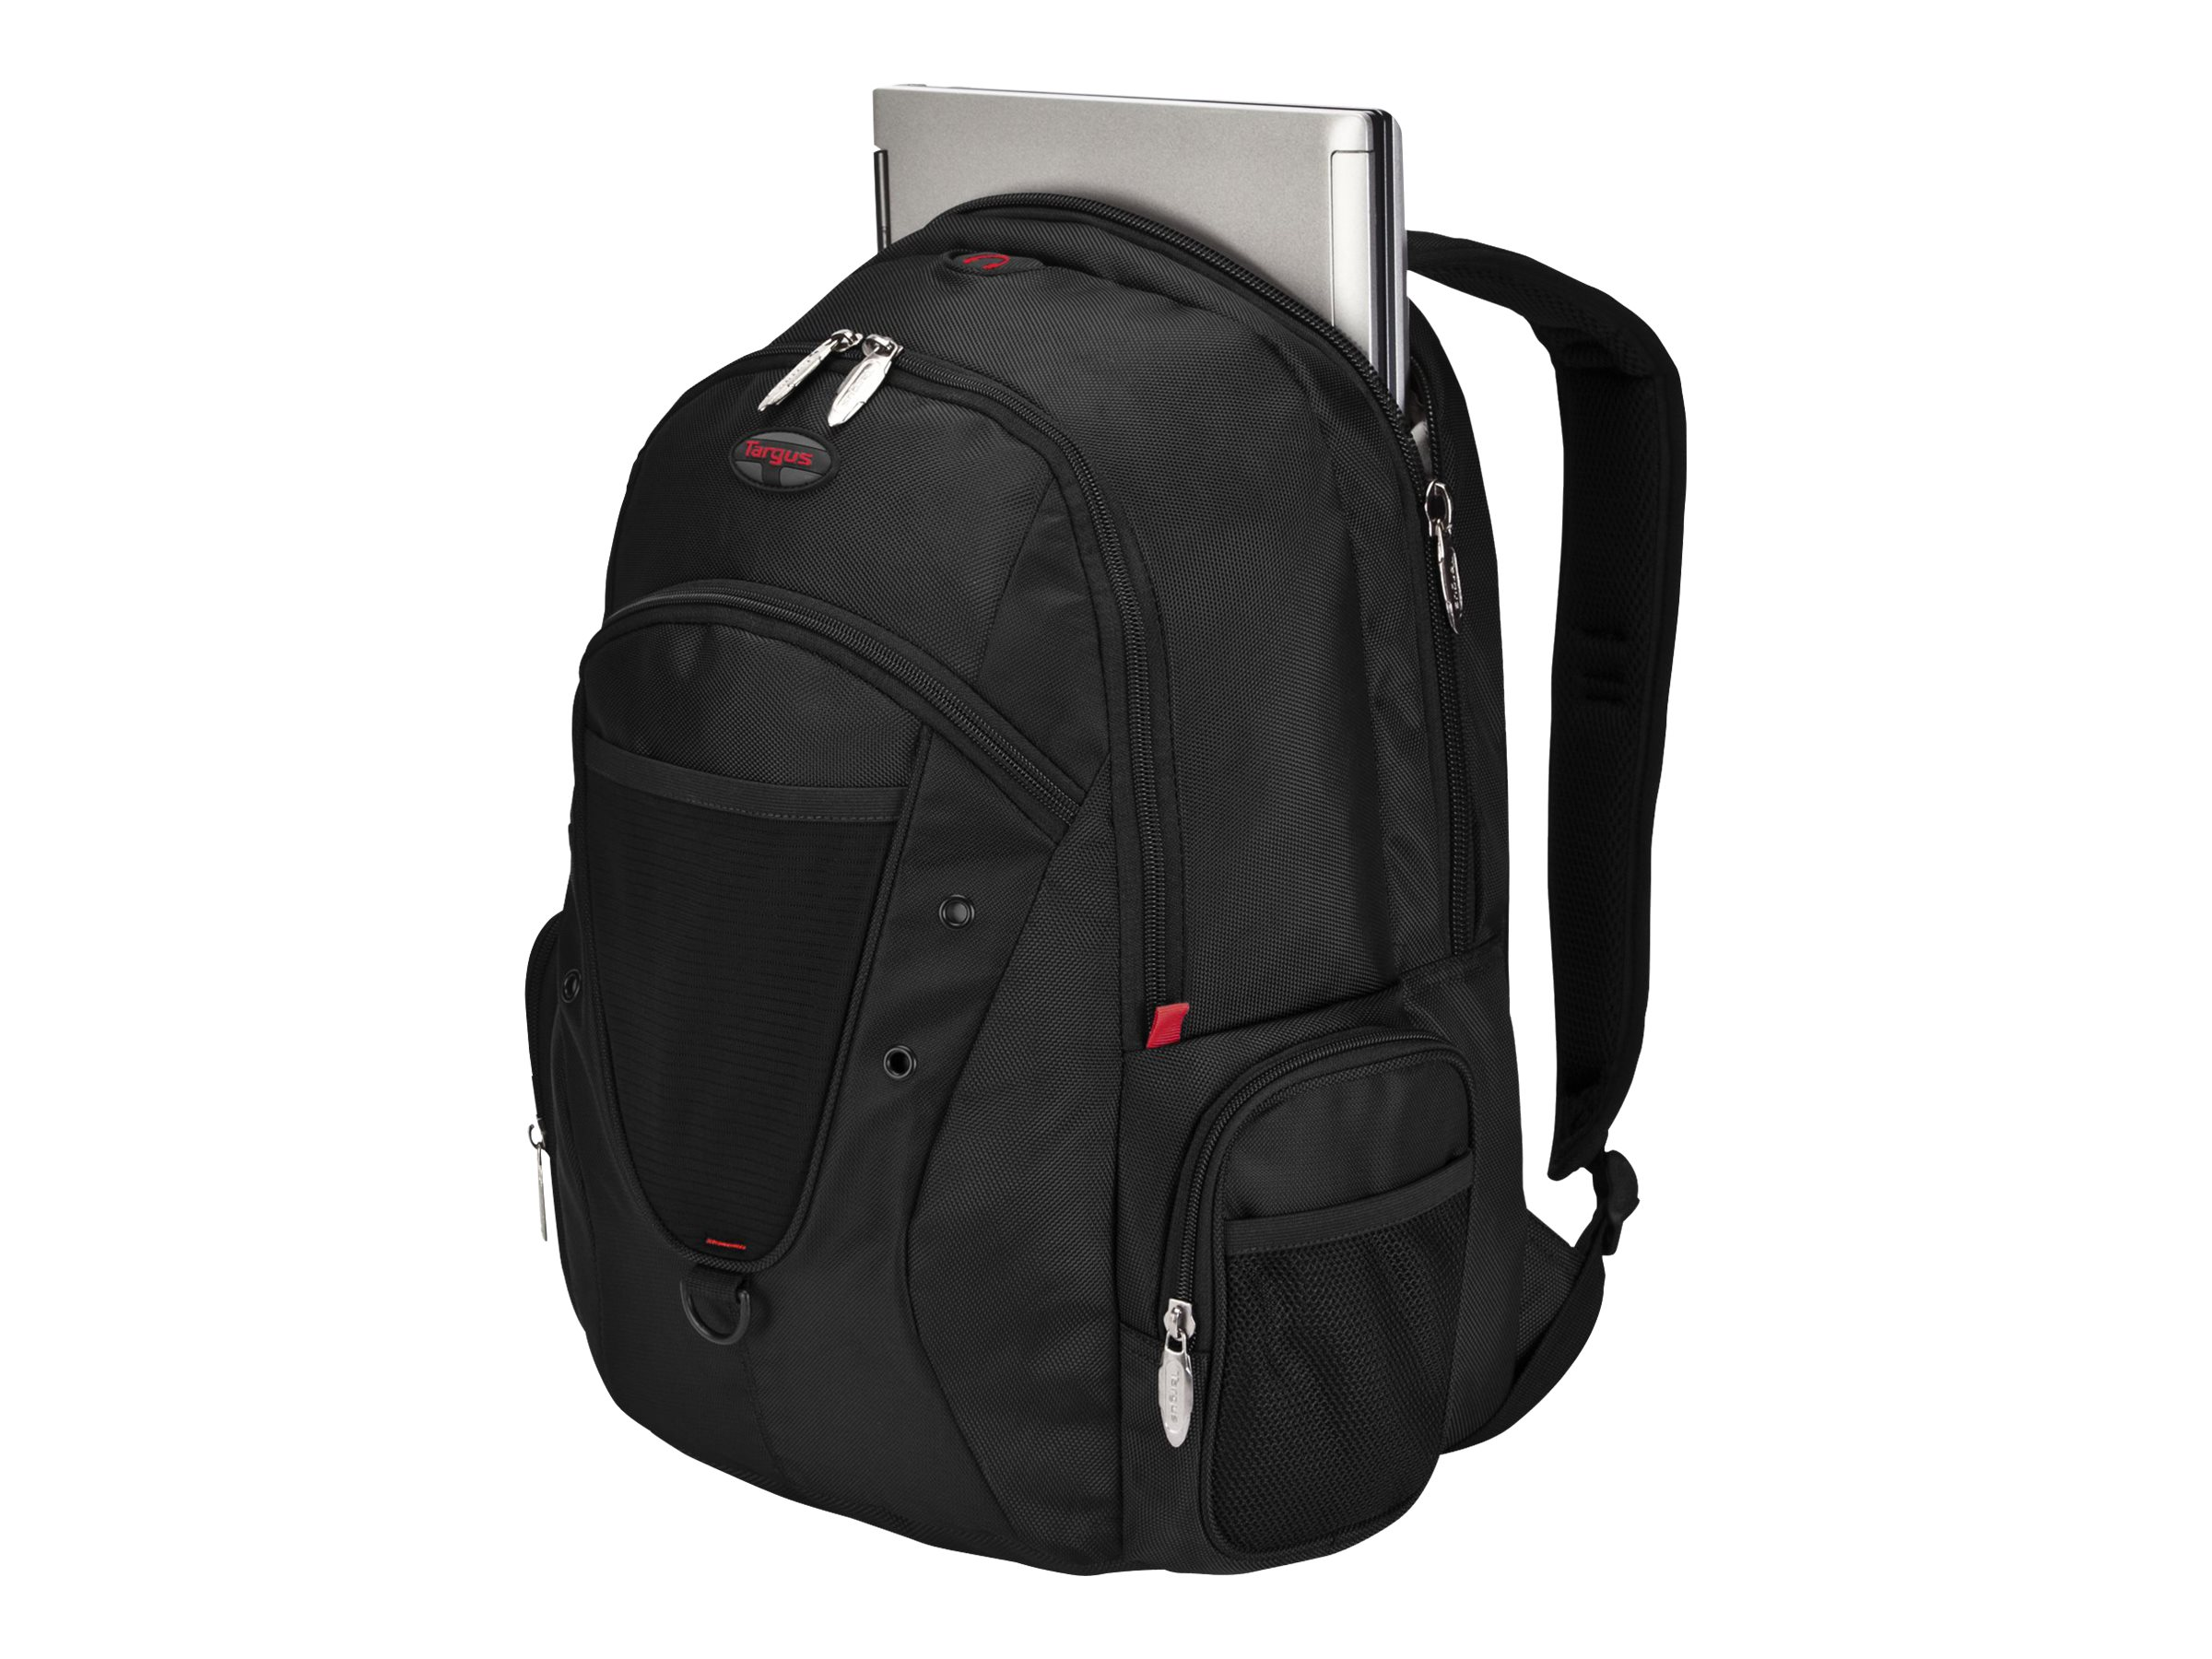 Targus 16 Expedition Backpack, Black Red Accents, TSB229US, 13291249, Carrying Cases - Notebook